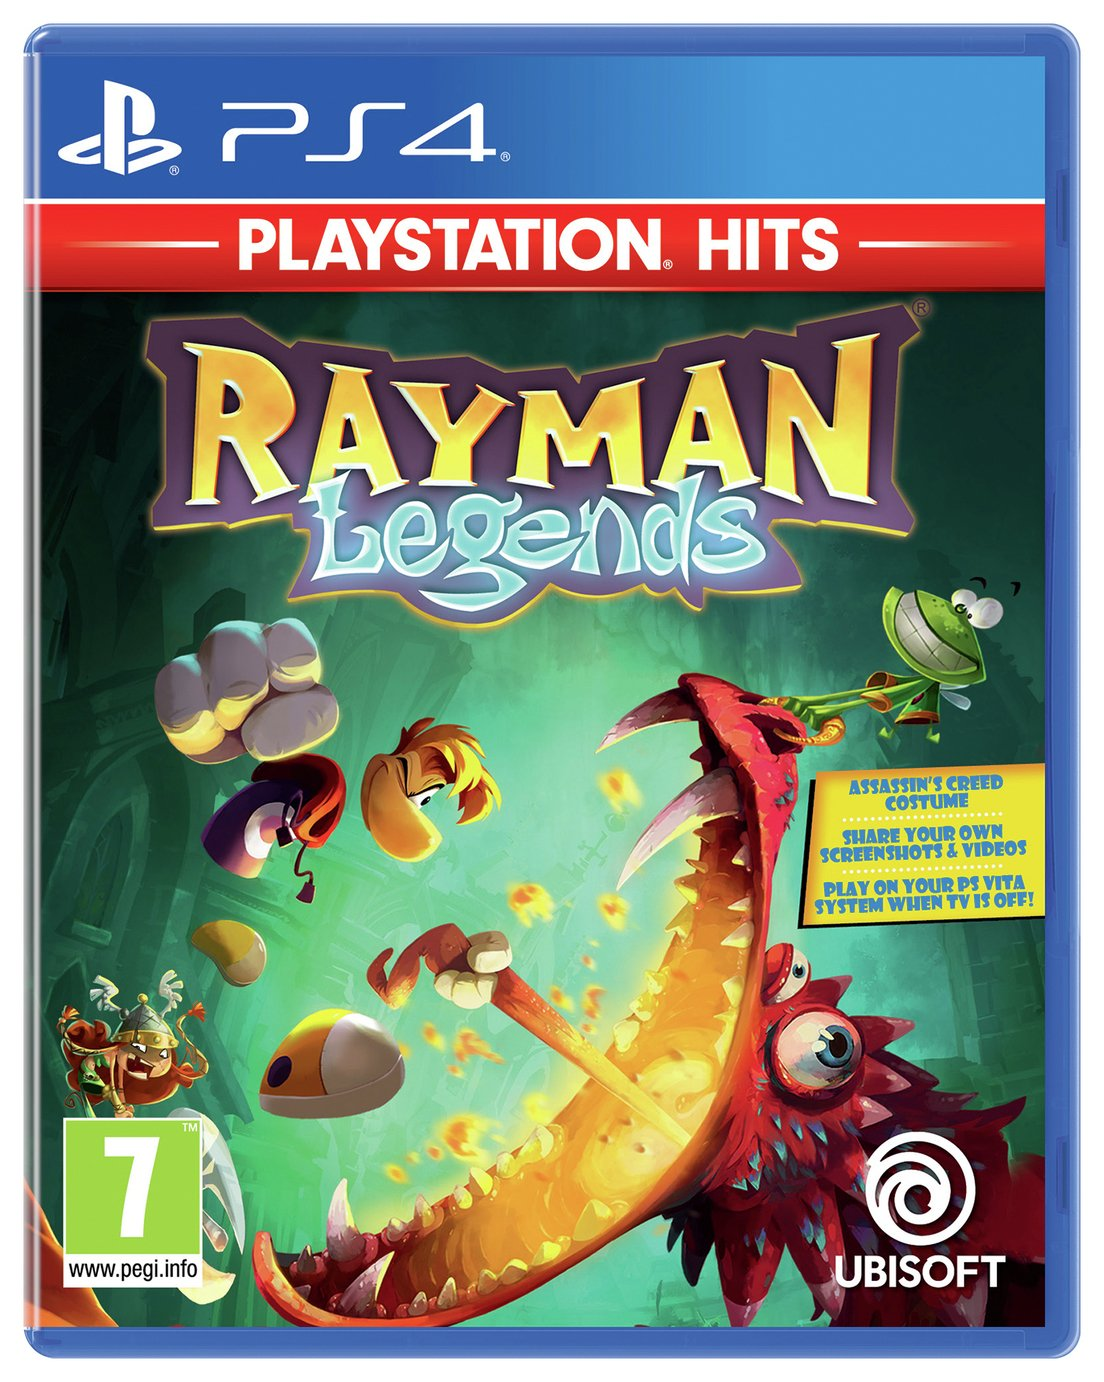 Rayman Legends - PS4 Game from Rayman